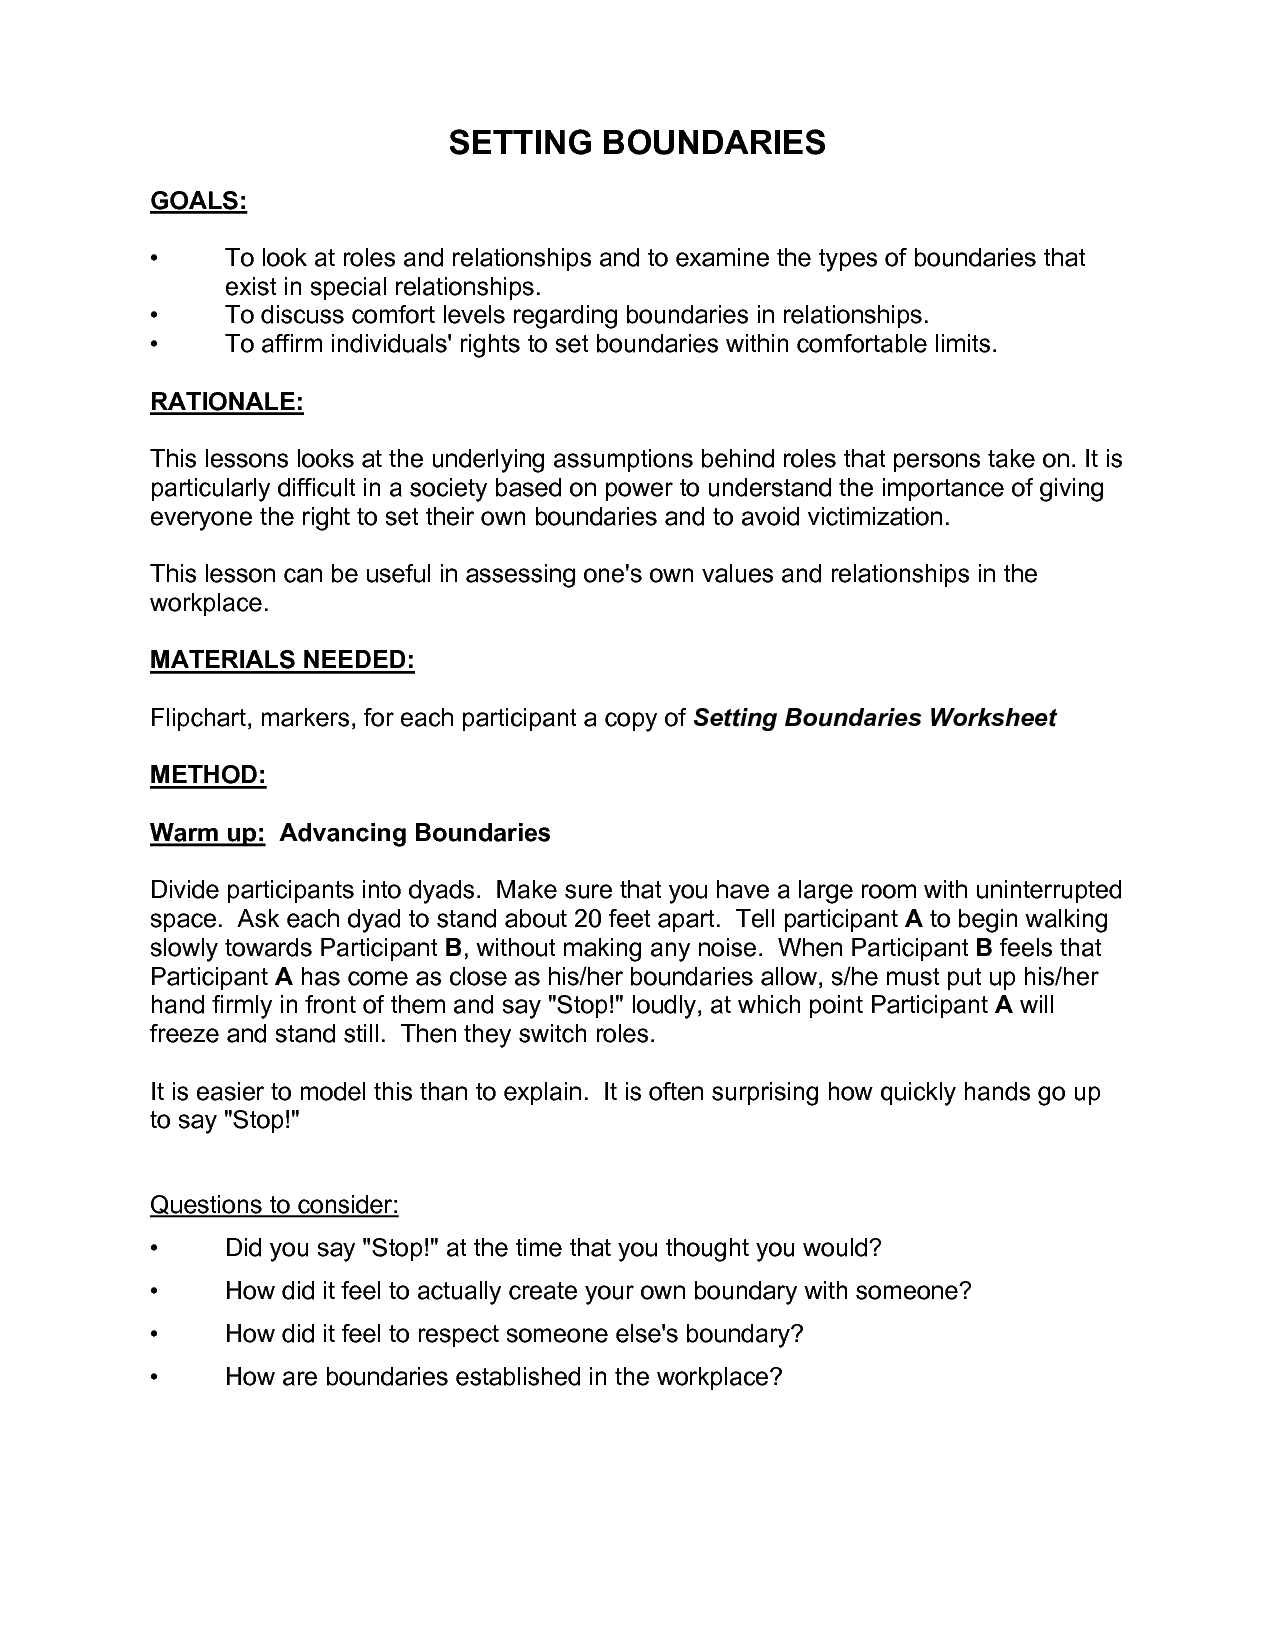 Printables Healthy Boundaries Worksheet the ojays presents and relationships on pinterest healthyboundariesworksheet setting boundaries worksheet